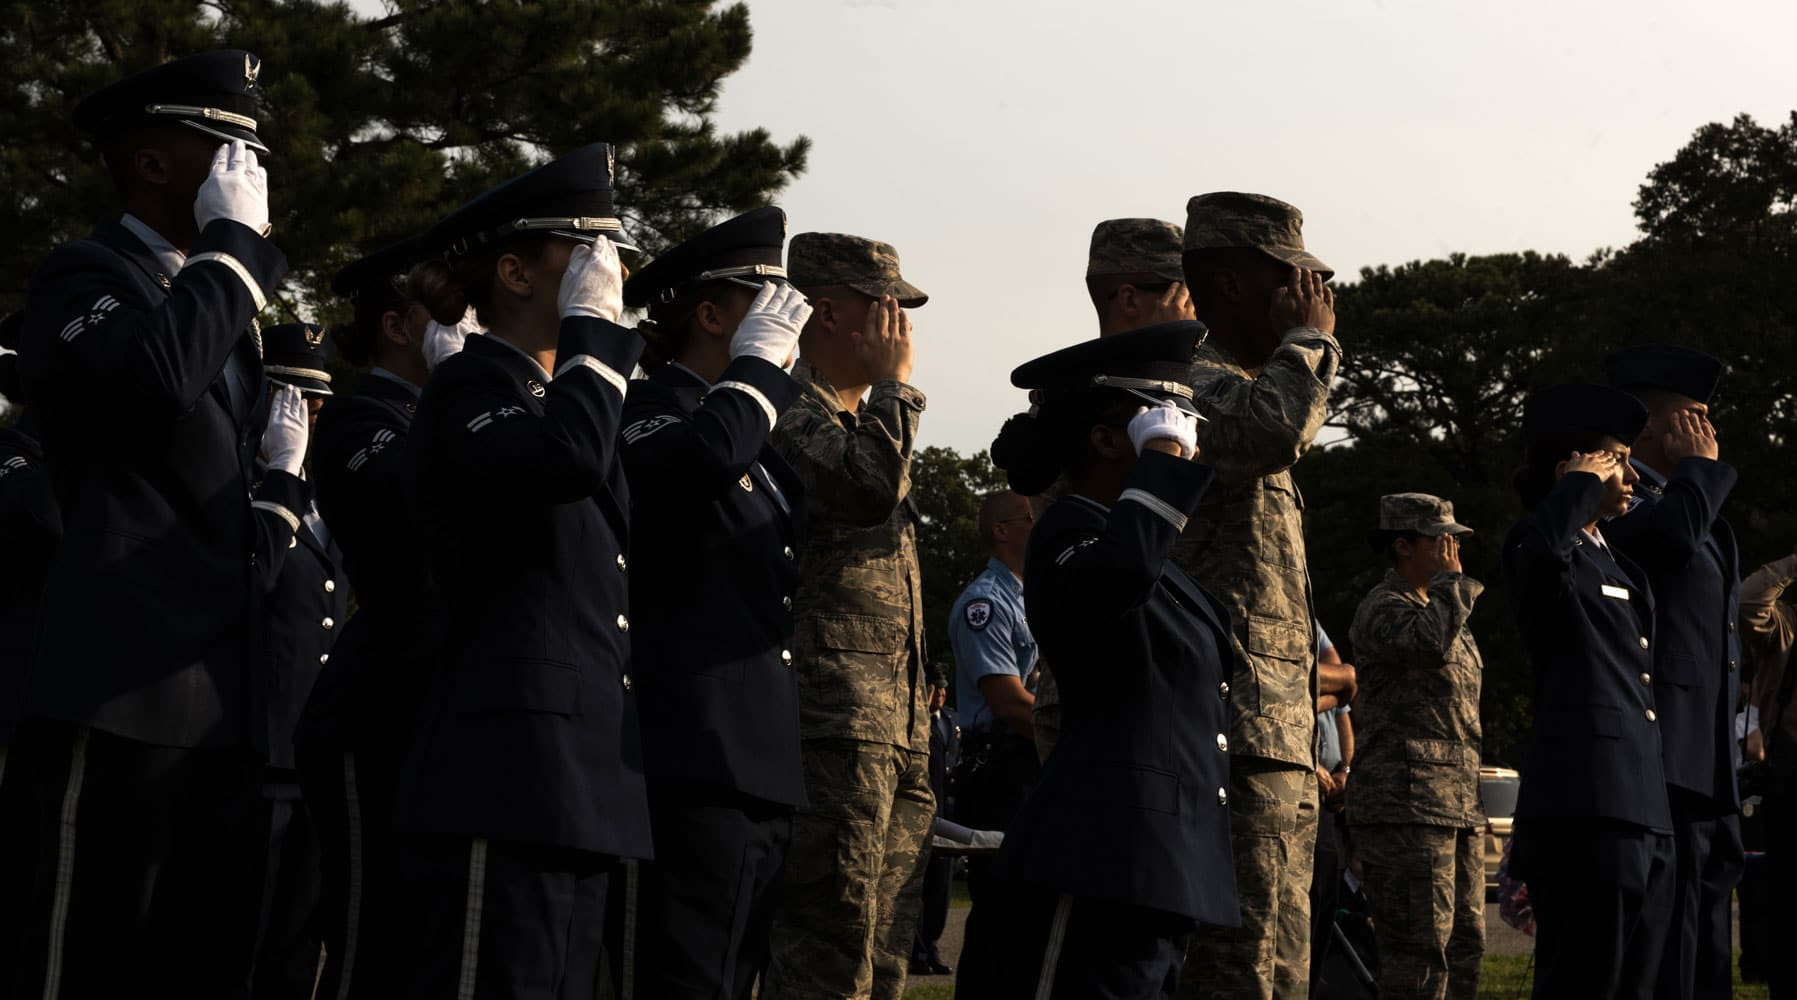 "United States Armed Forces service members and local authorities render a salute during the playing of Taps while attending ""The Reading of The Names"" at Gosnolds Hope Park, Hampton, Va., Sept. 11, 2017. The event was hosted by the City of Hampton, reading those lost on Sept. 11, 2001 and those who have made the ultimate sacrifice since Sept. 11, 2001 to Aug. 27, 2017."